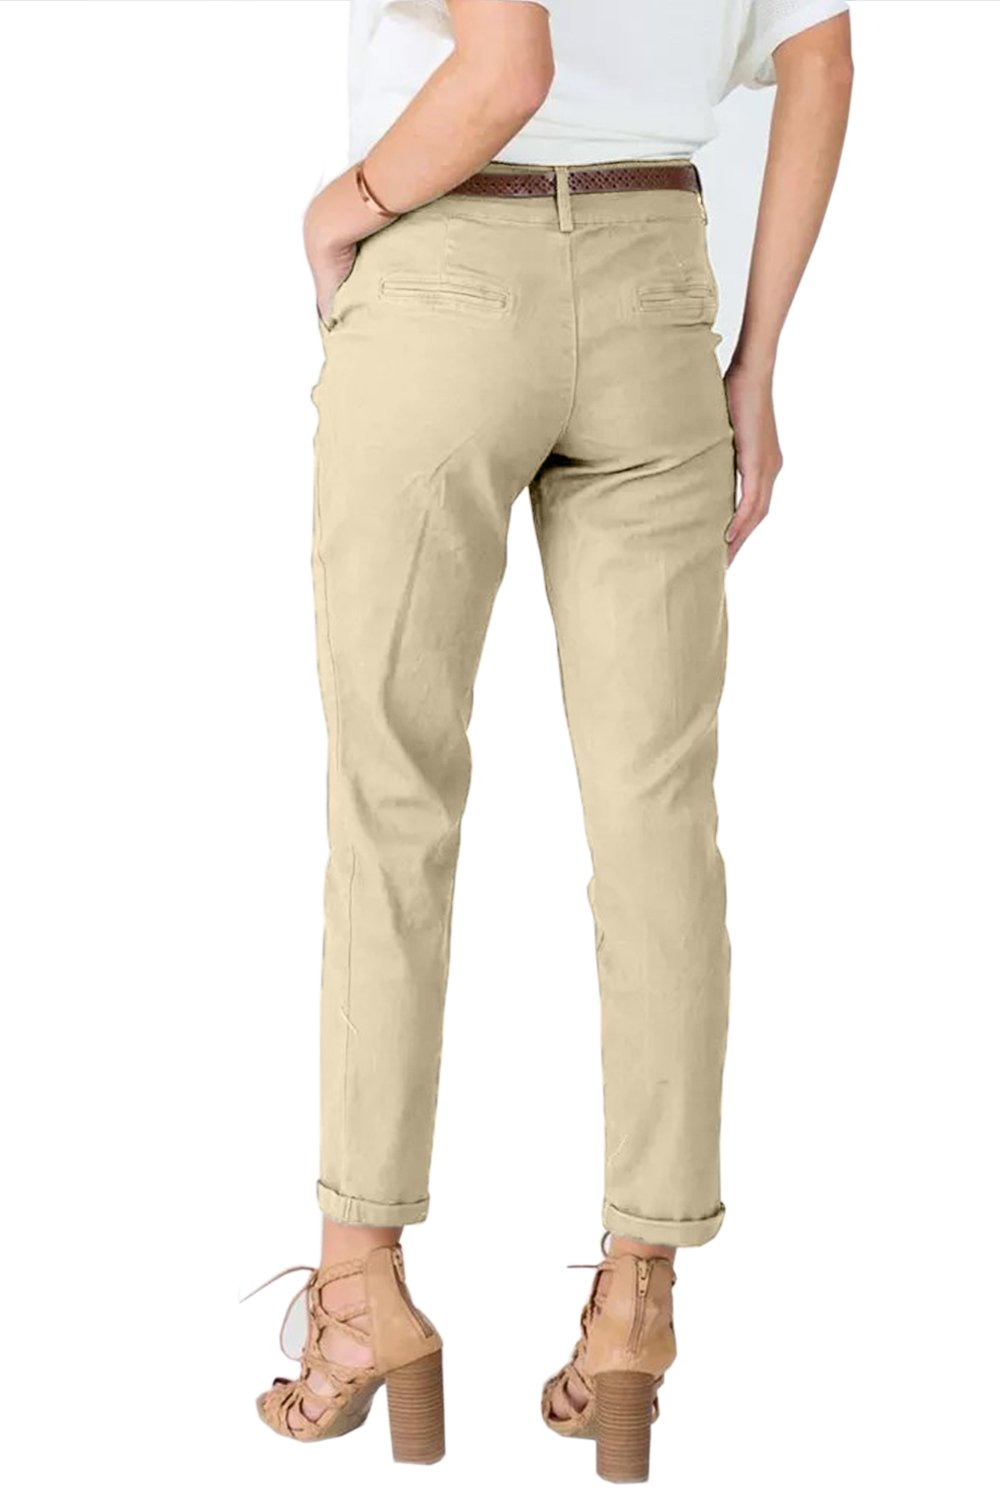 Women's Slimming Straight Leg Pants Casual Cropped Ankle  Trousers 4